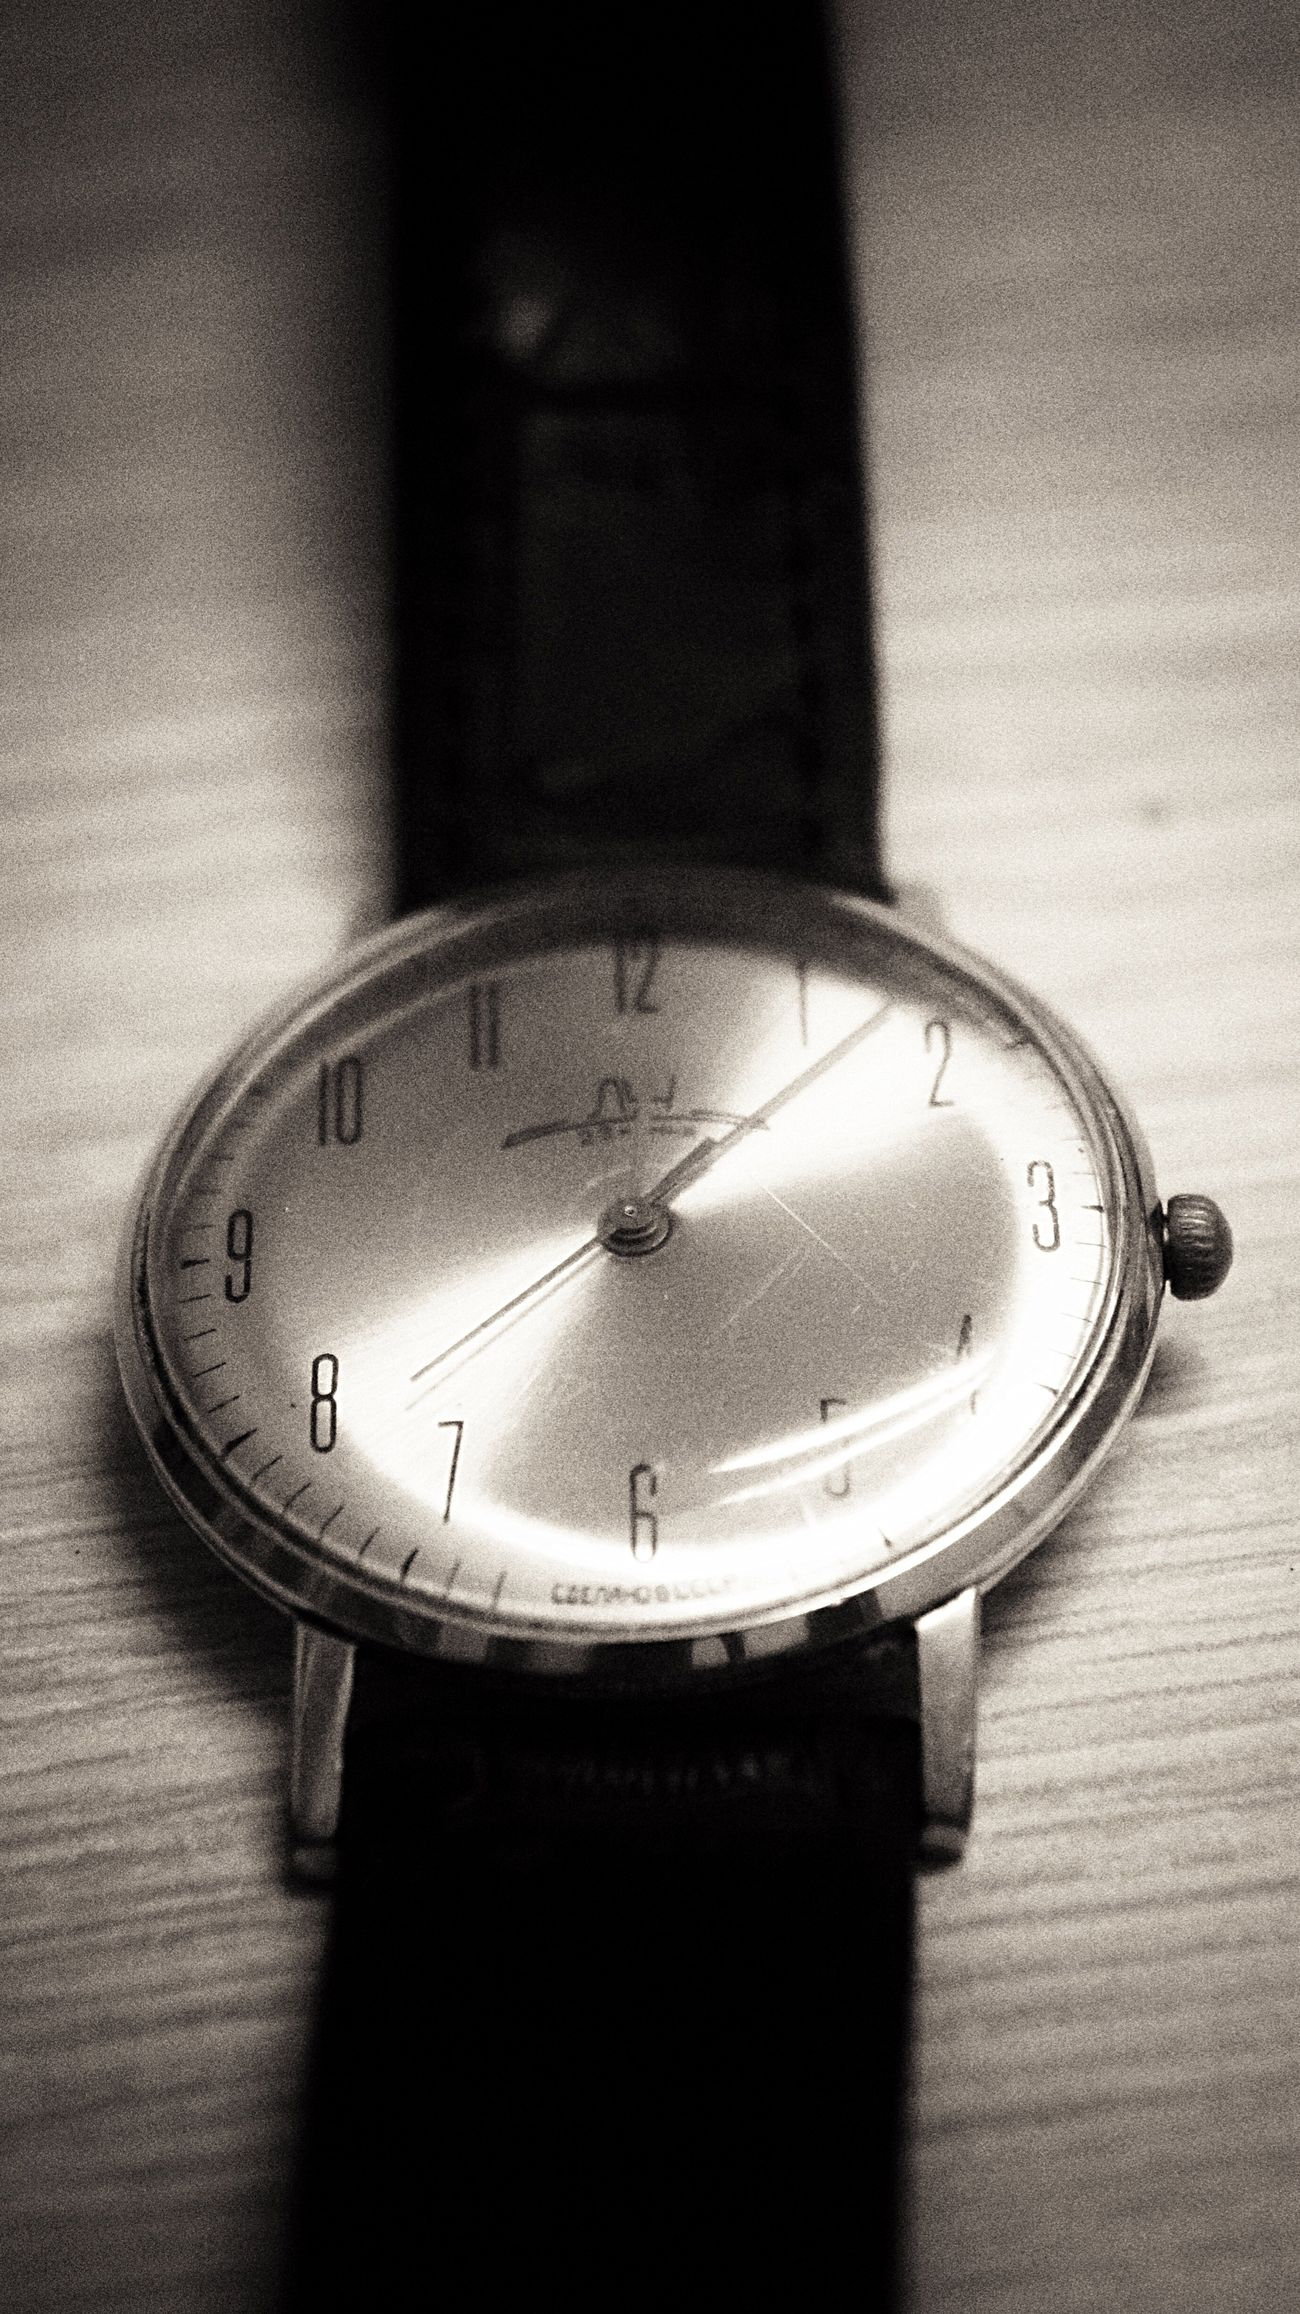 Soviet Watch Timeless